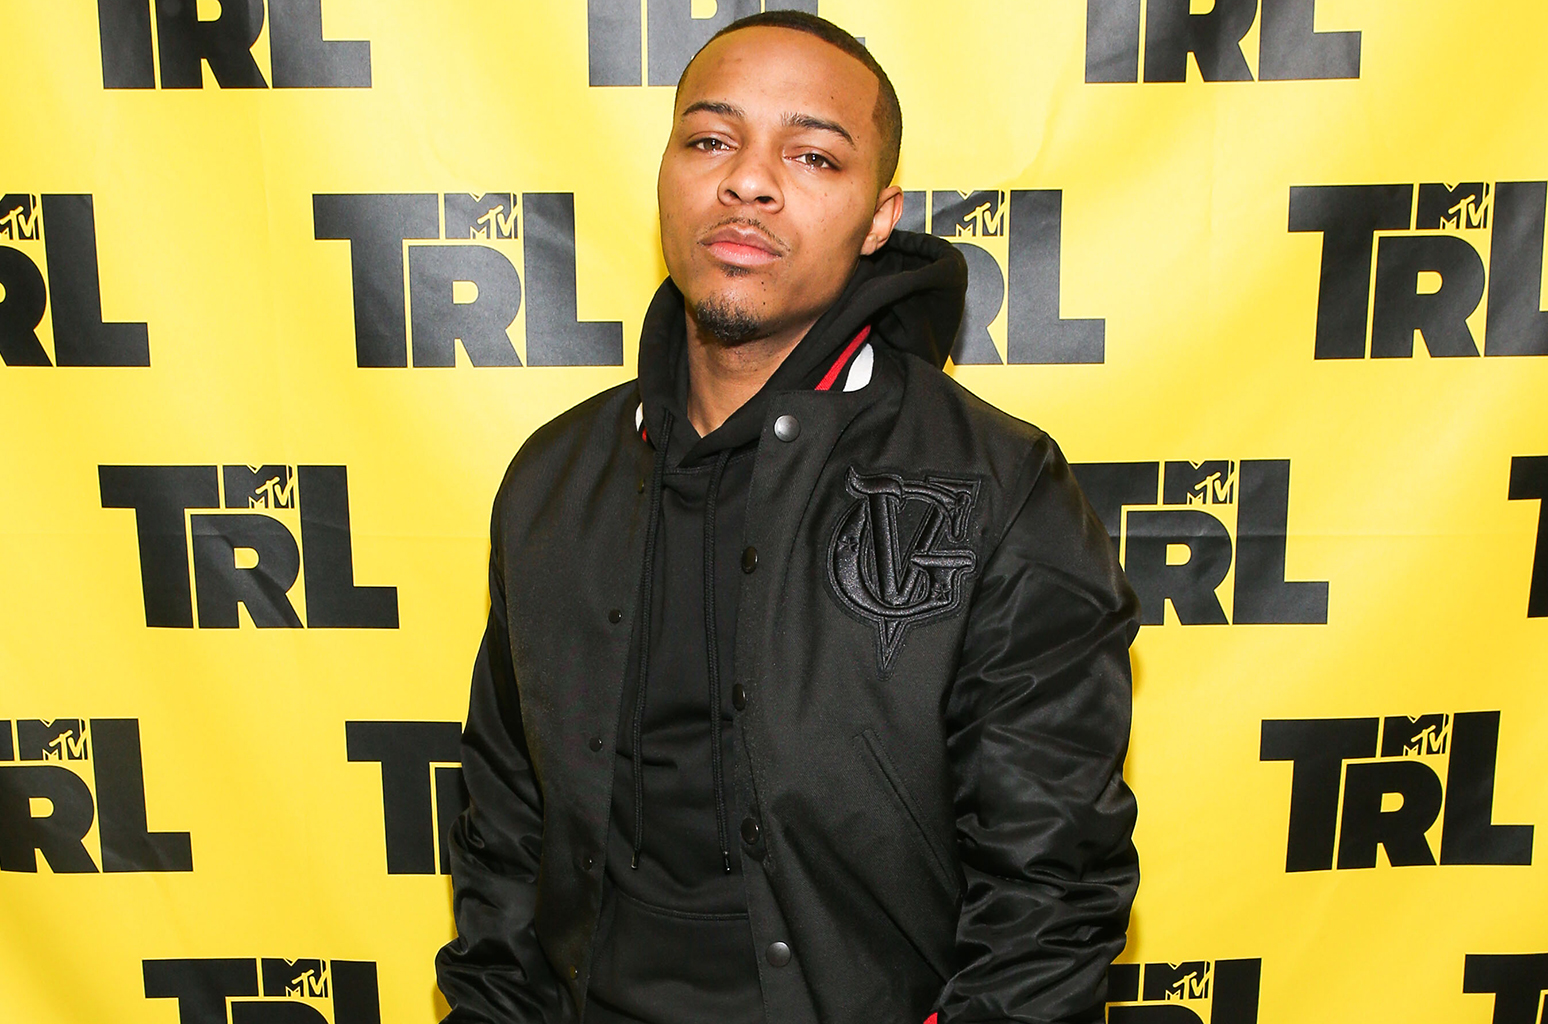 Bow Wow Plans To Pull Out Of 'So So Def' Tour, Goes on Wild Twitter Rant